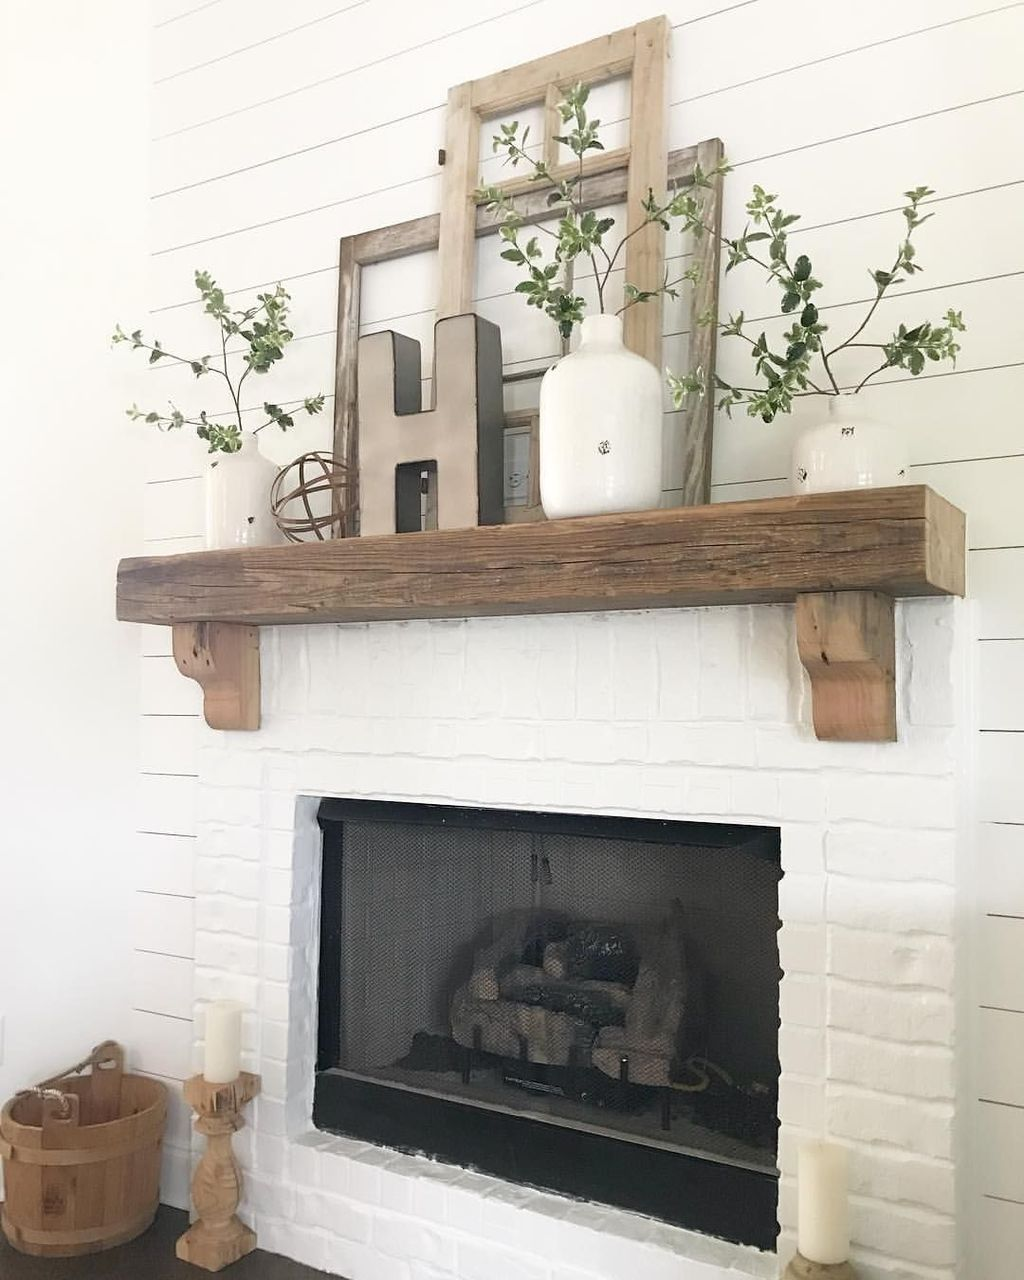 Wayfair Fireplace Mantel Lovely 39 Cozy Fireplace Decor Ideas for White Walls